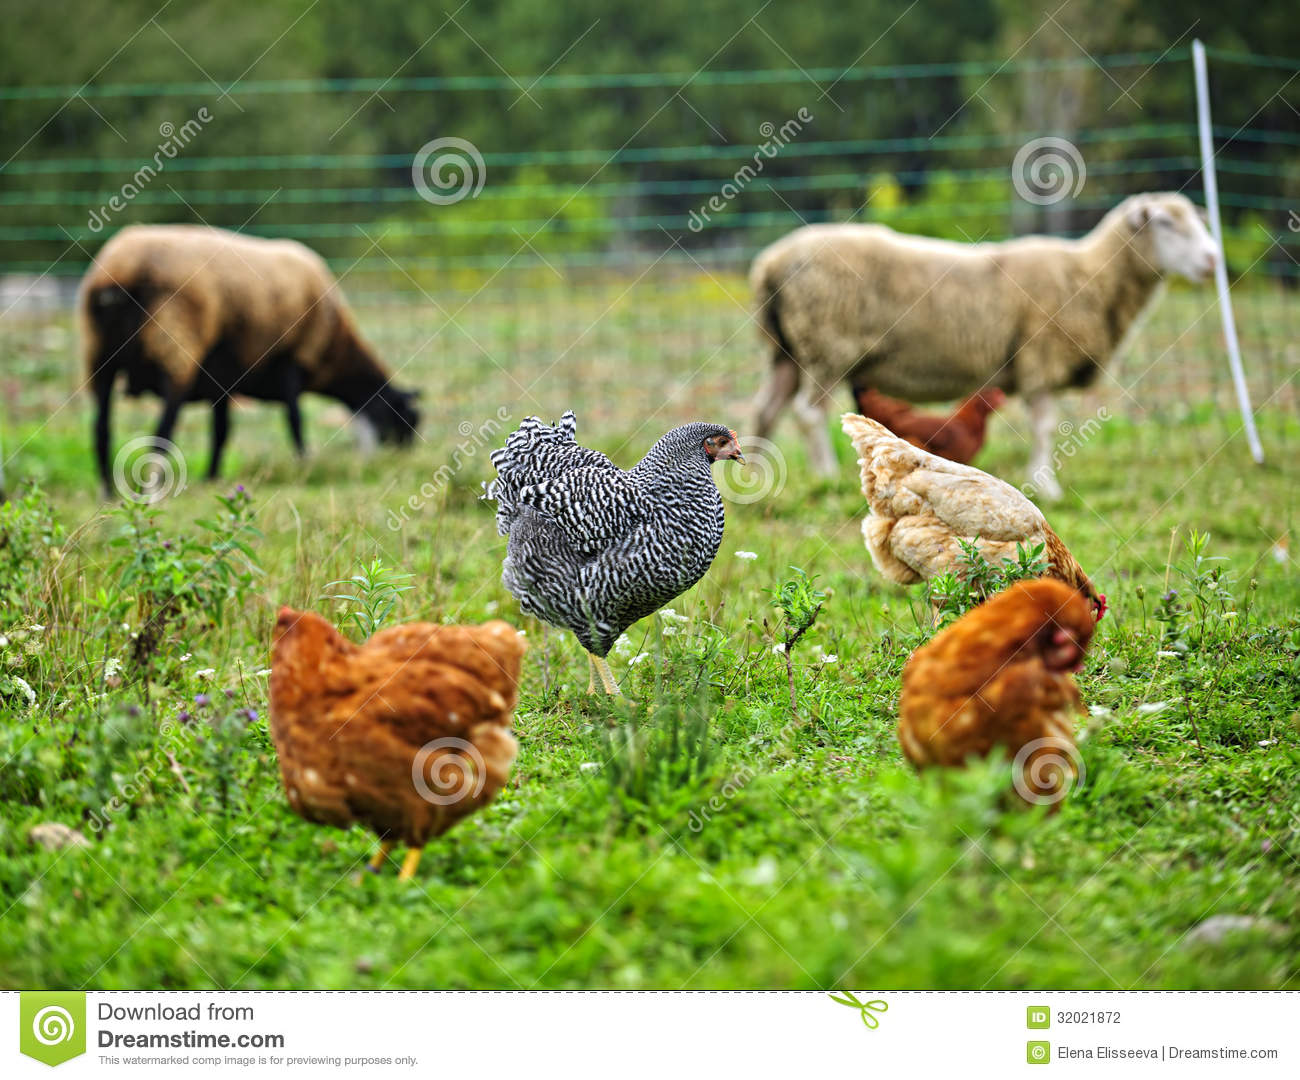 Chickens and sheep grazing on organic farm